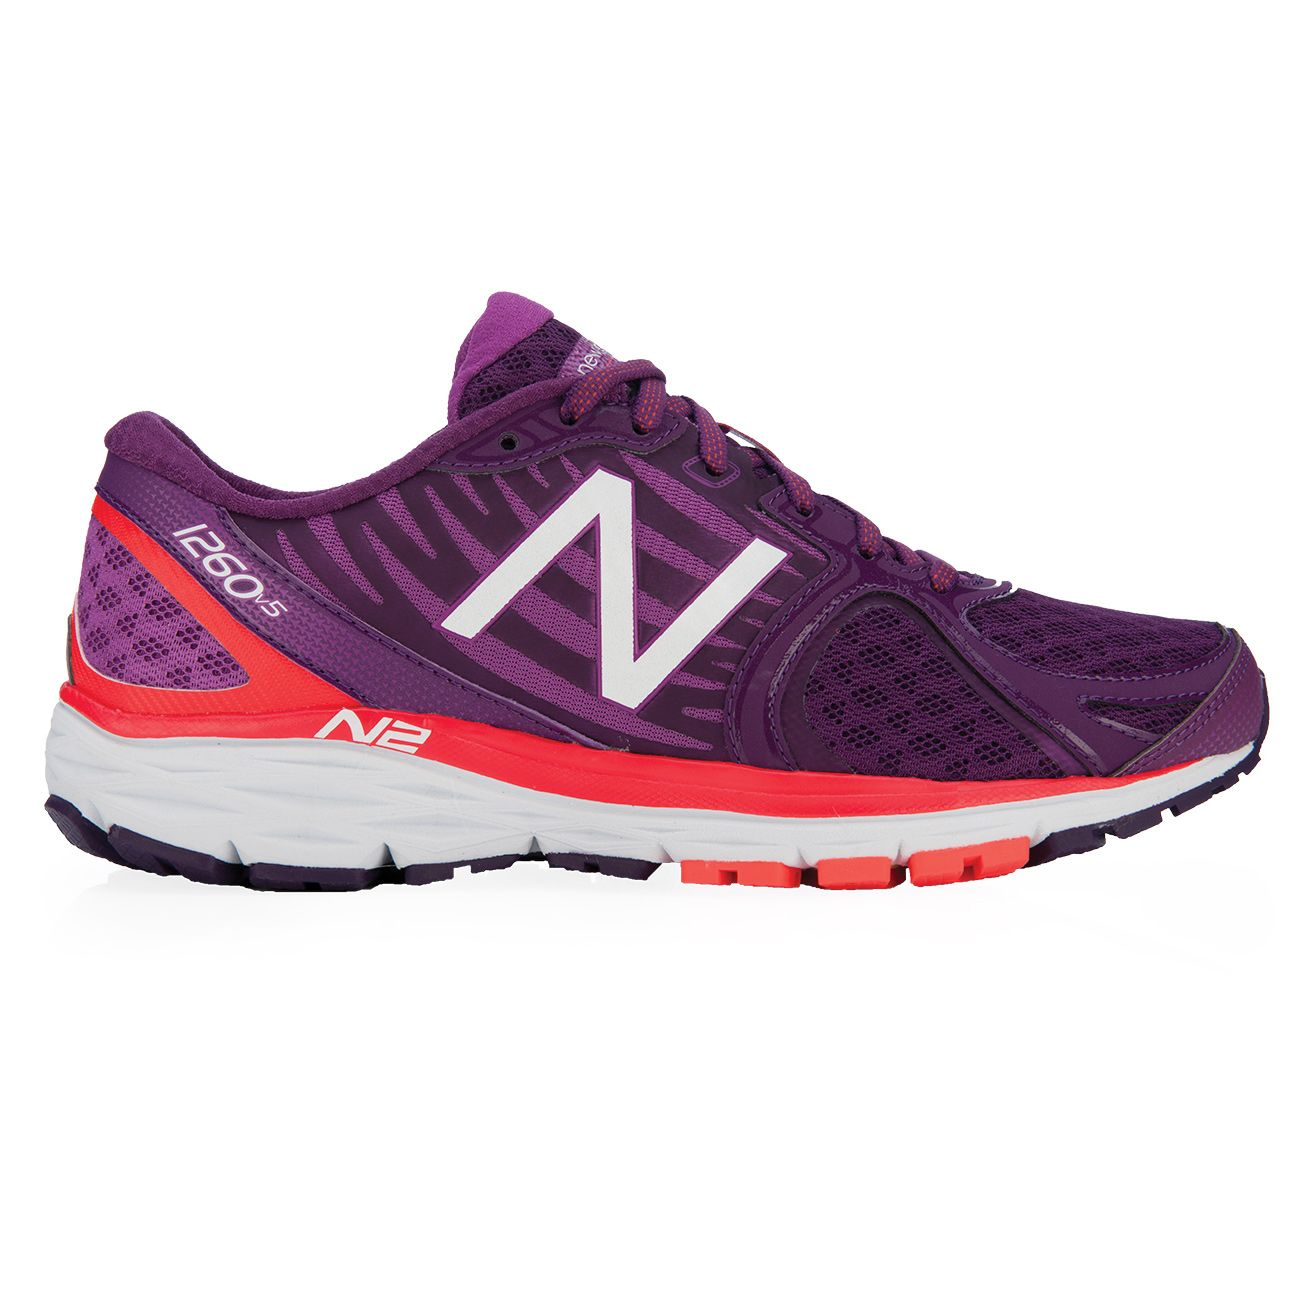 New Balance Arch Support Running Shoes